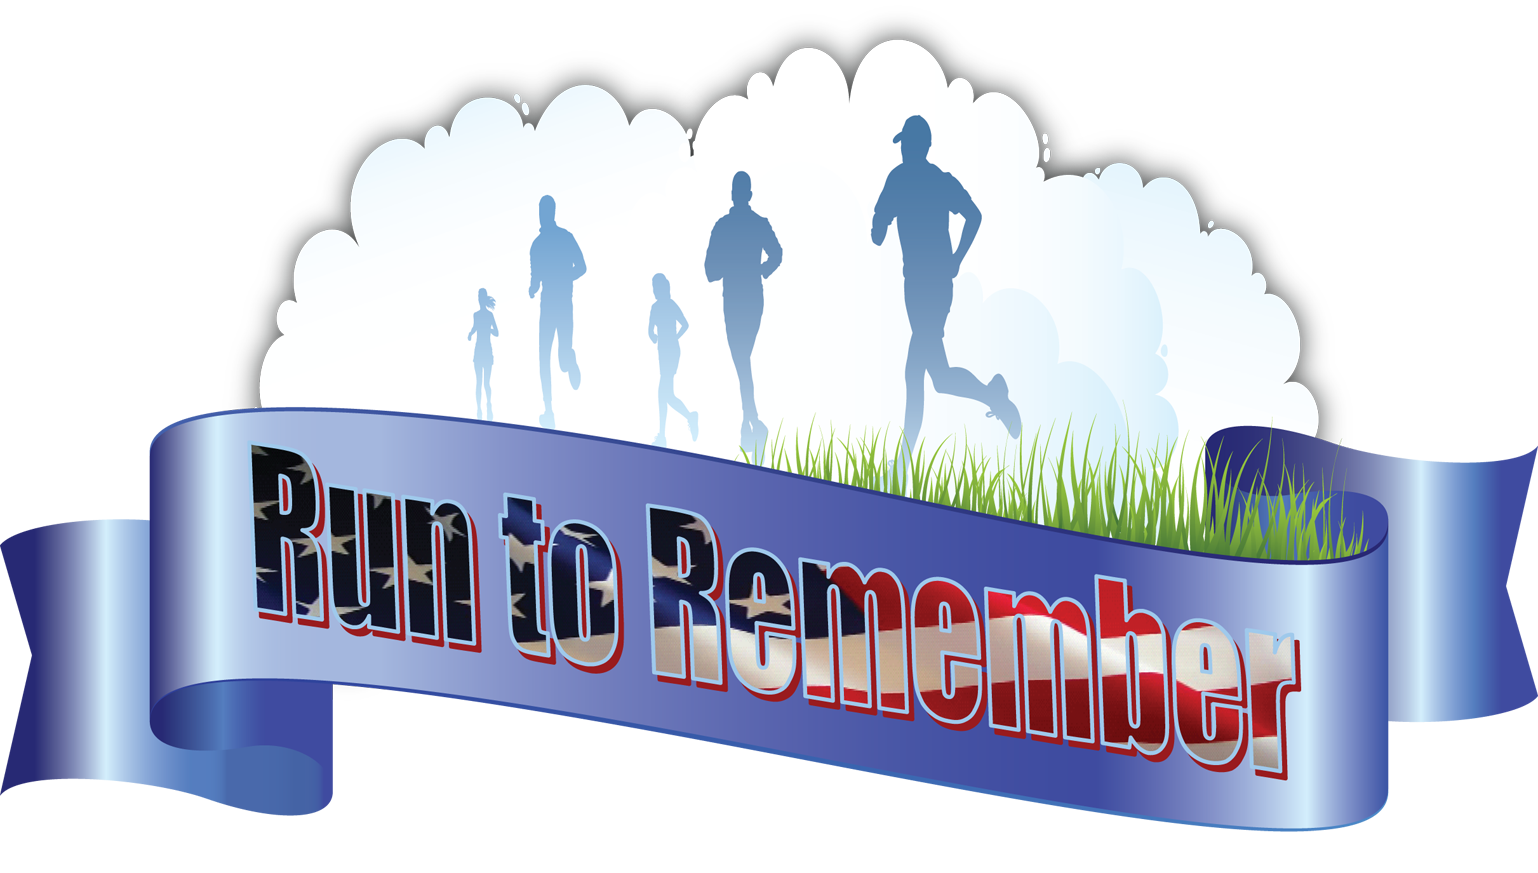 Run to Remember logo